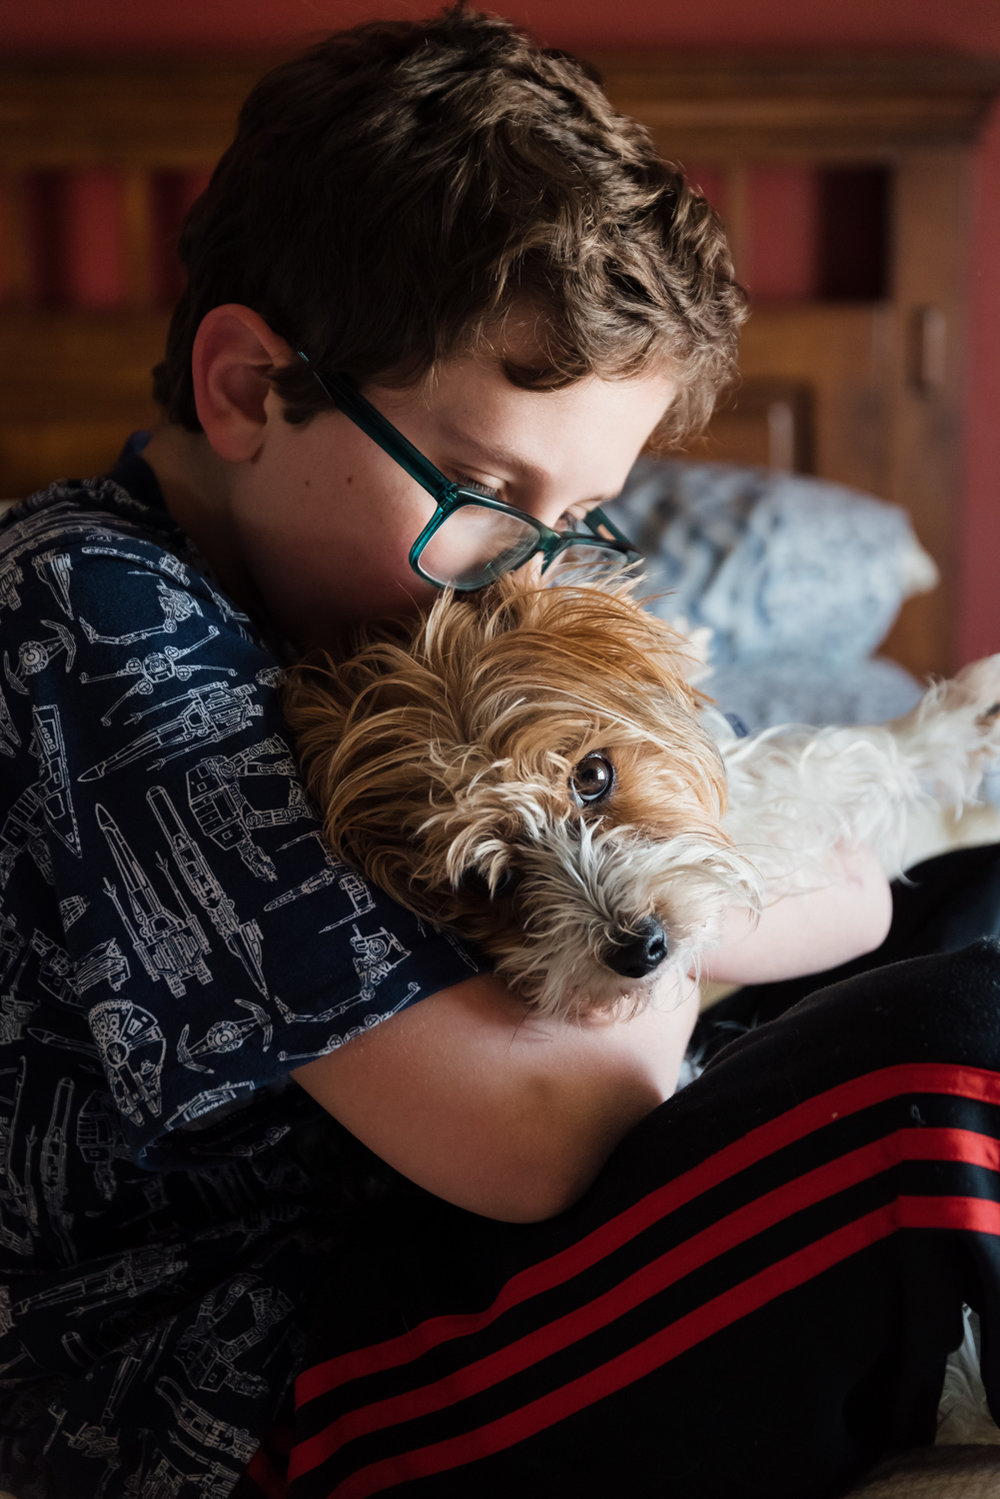 Photo of boy hugging his dog in bedroom window light.